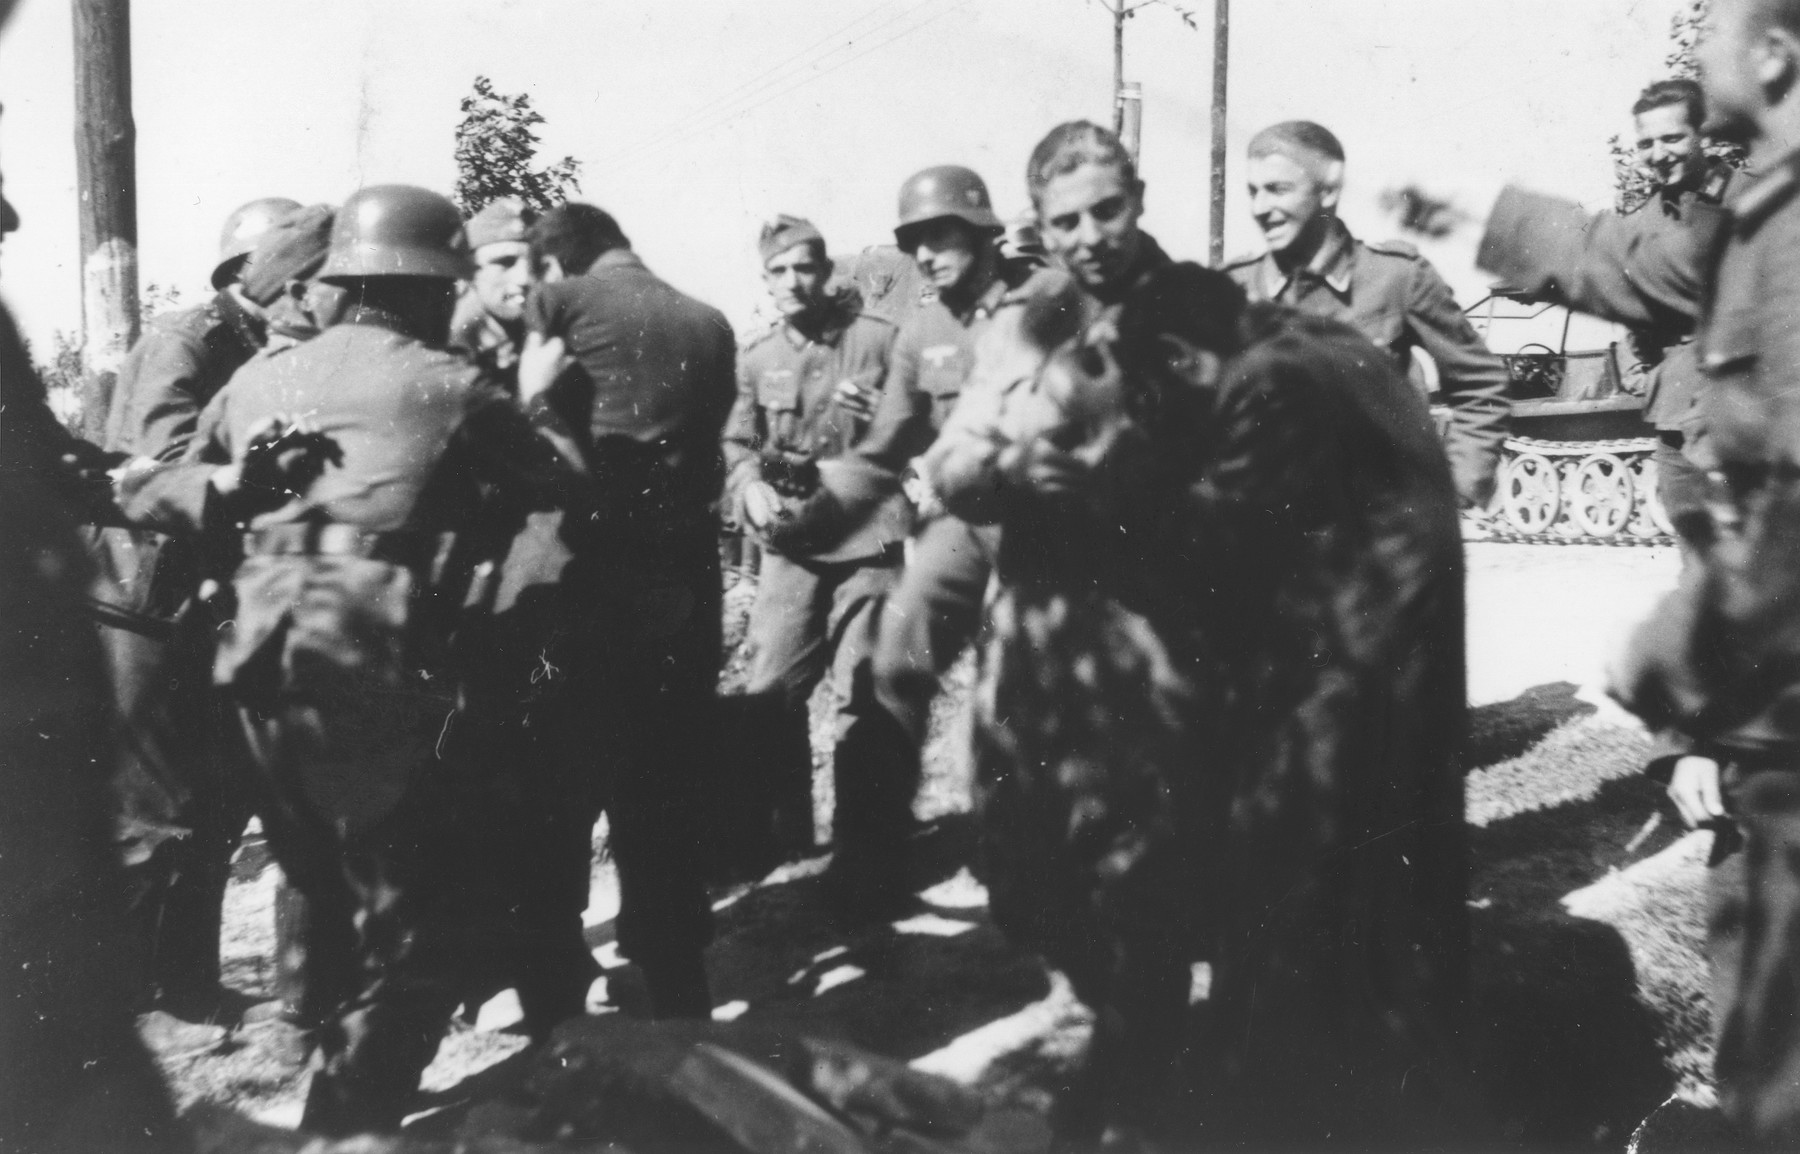 Jews are beaten by German soldiers in a town 15 km. south of Lodz during the first weeks of the German invasion.